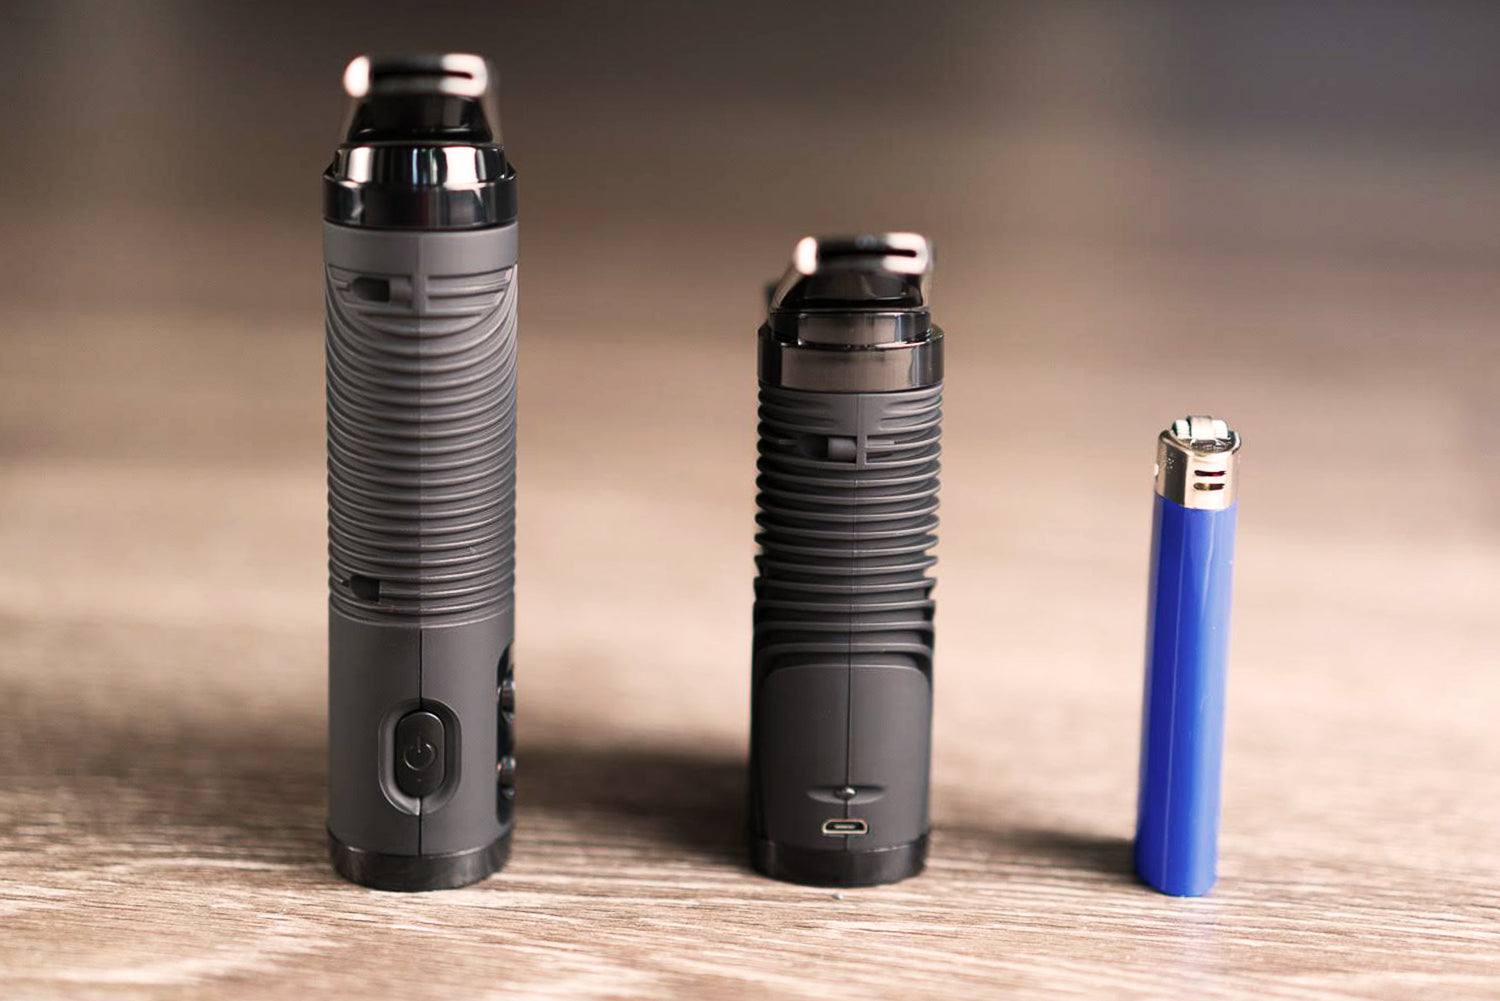 Boundless CFX And CF Vaporizers Sides - Planet of the Vapes